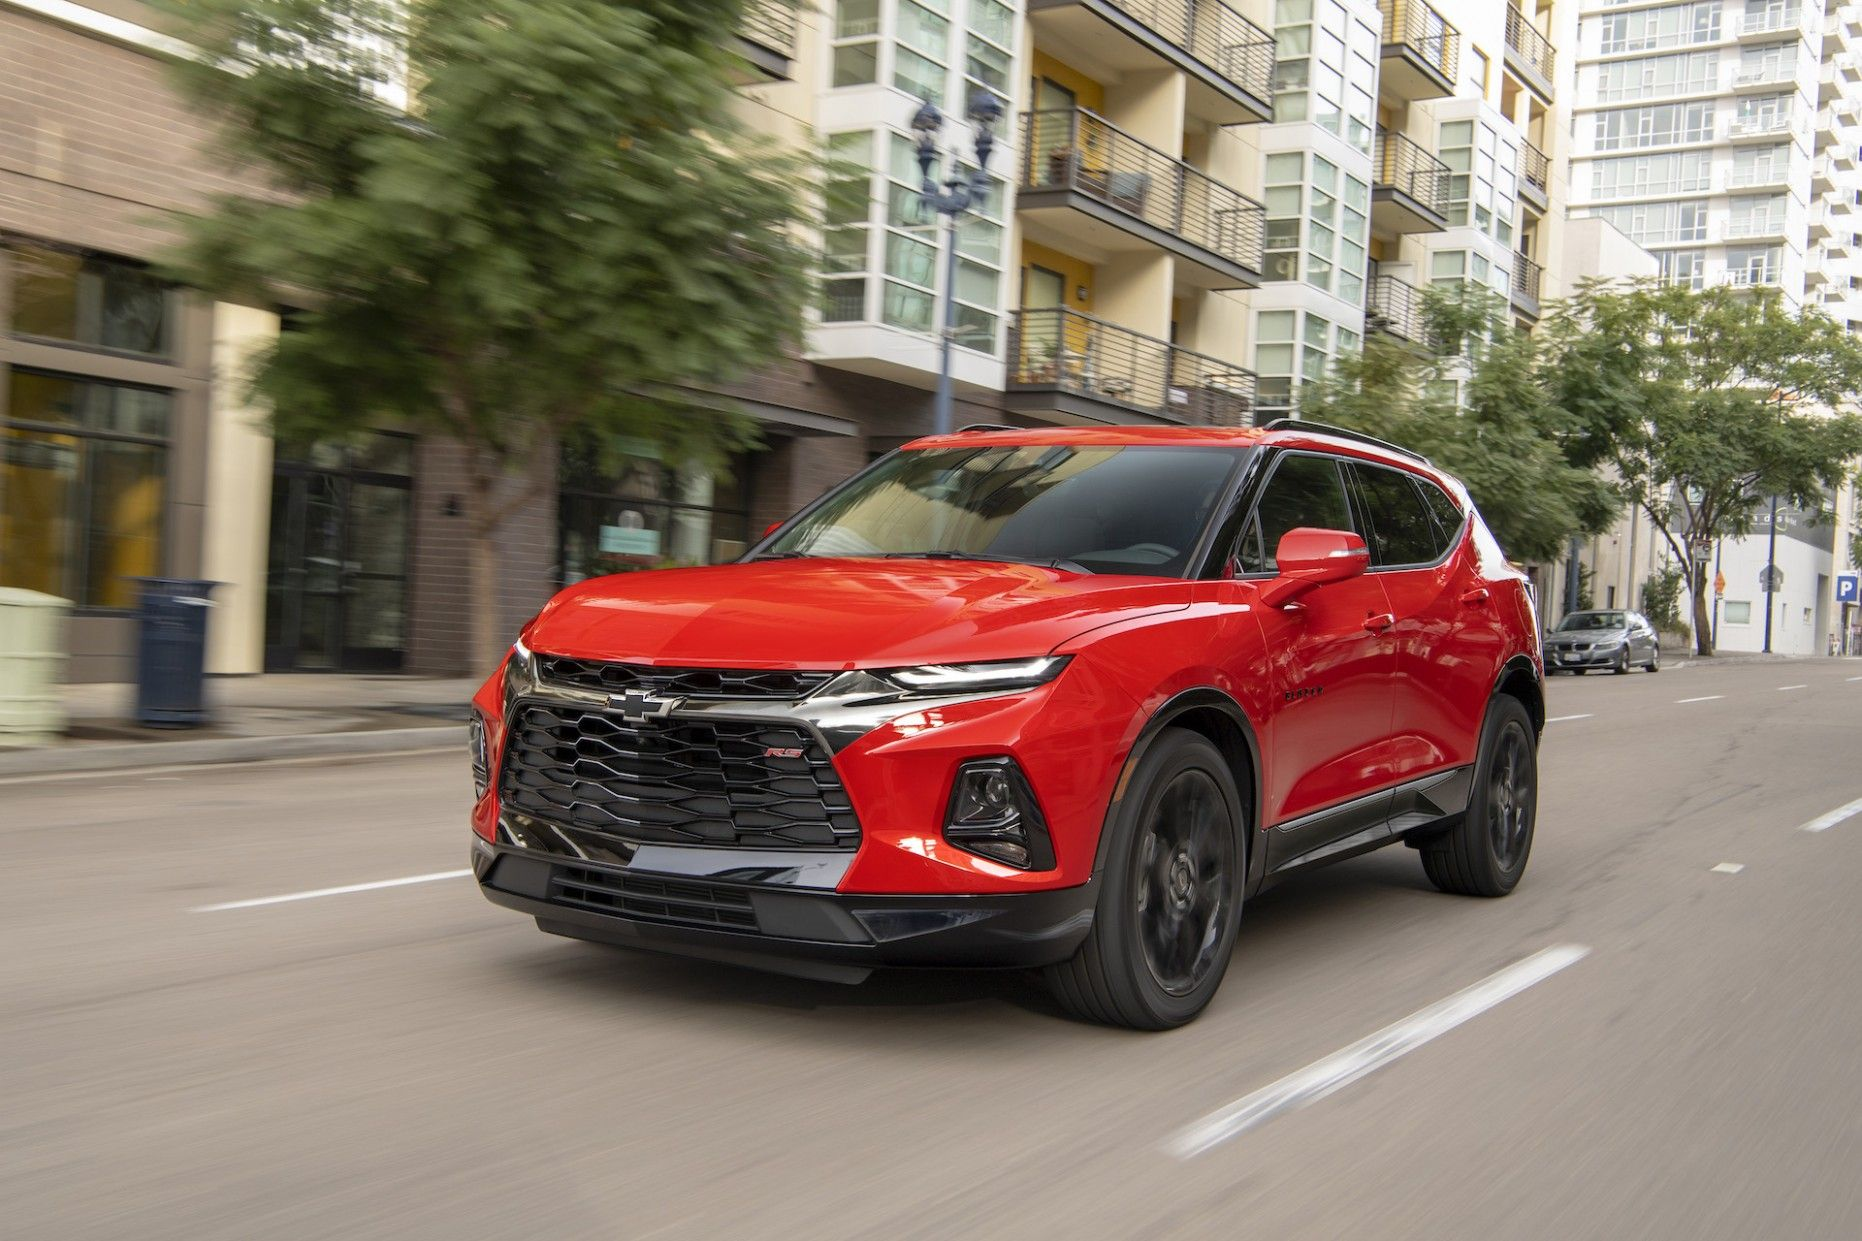 Chevrolet Blazer 2020 Price Philippines Chevrolet Trailblazer